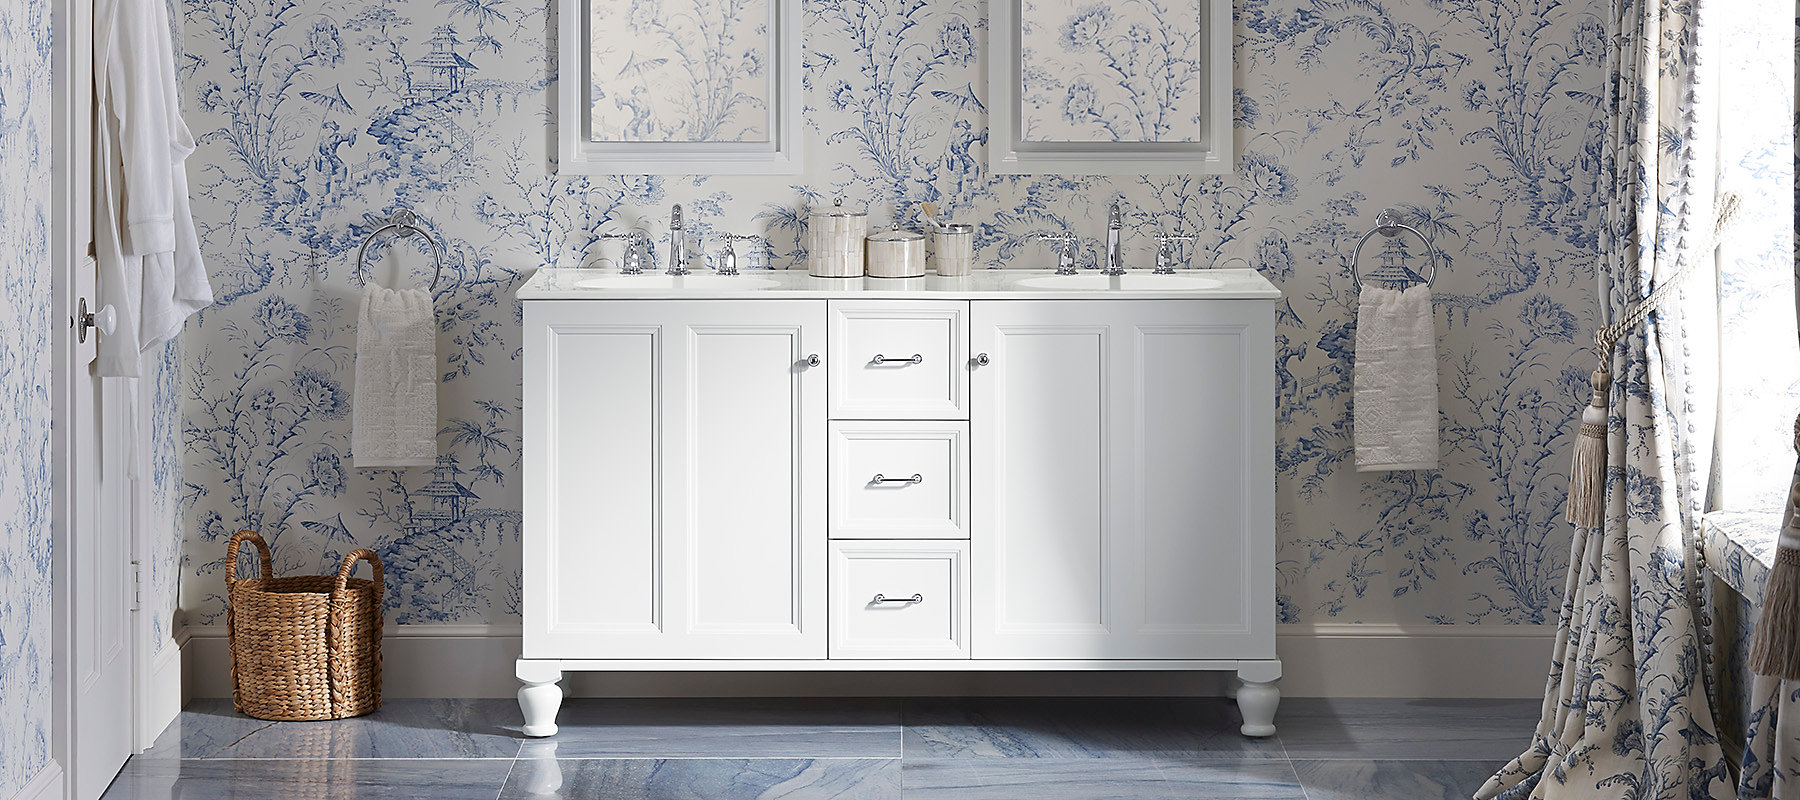 Antique white bathroom vanity buy or sell bath amp bathware in ontario - Kohler Beauty Begins With Eye Catching Storage